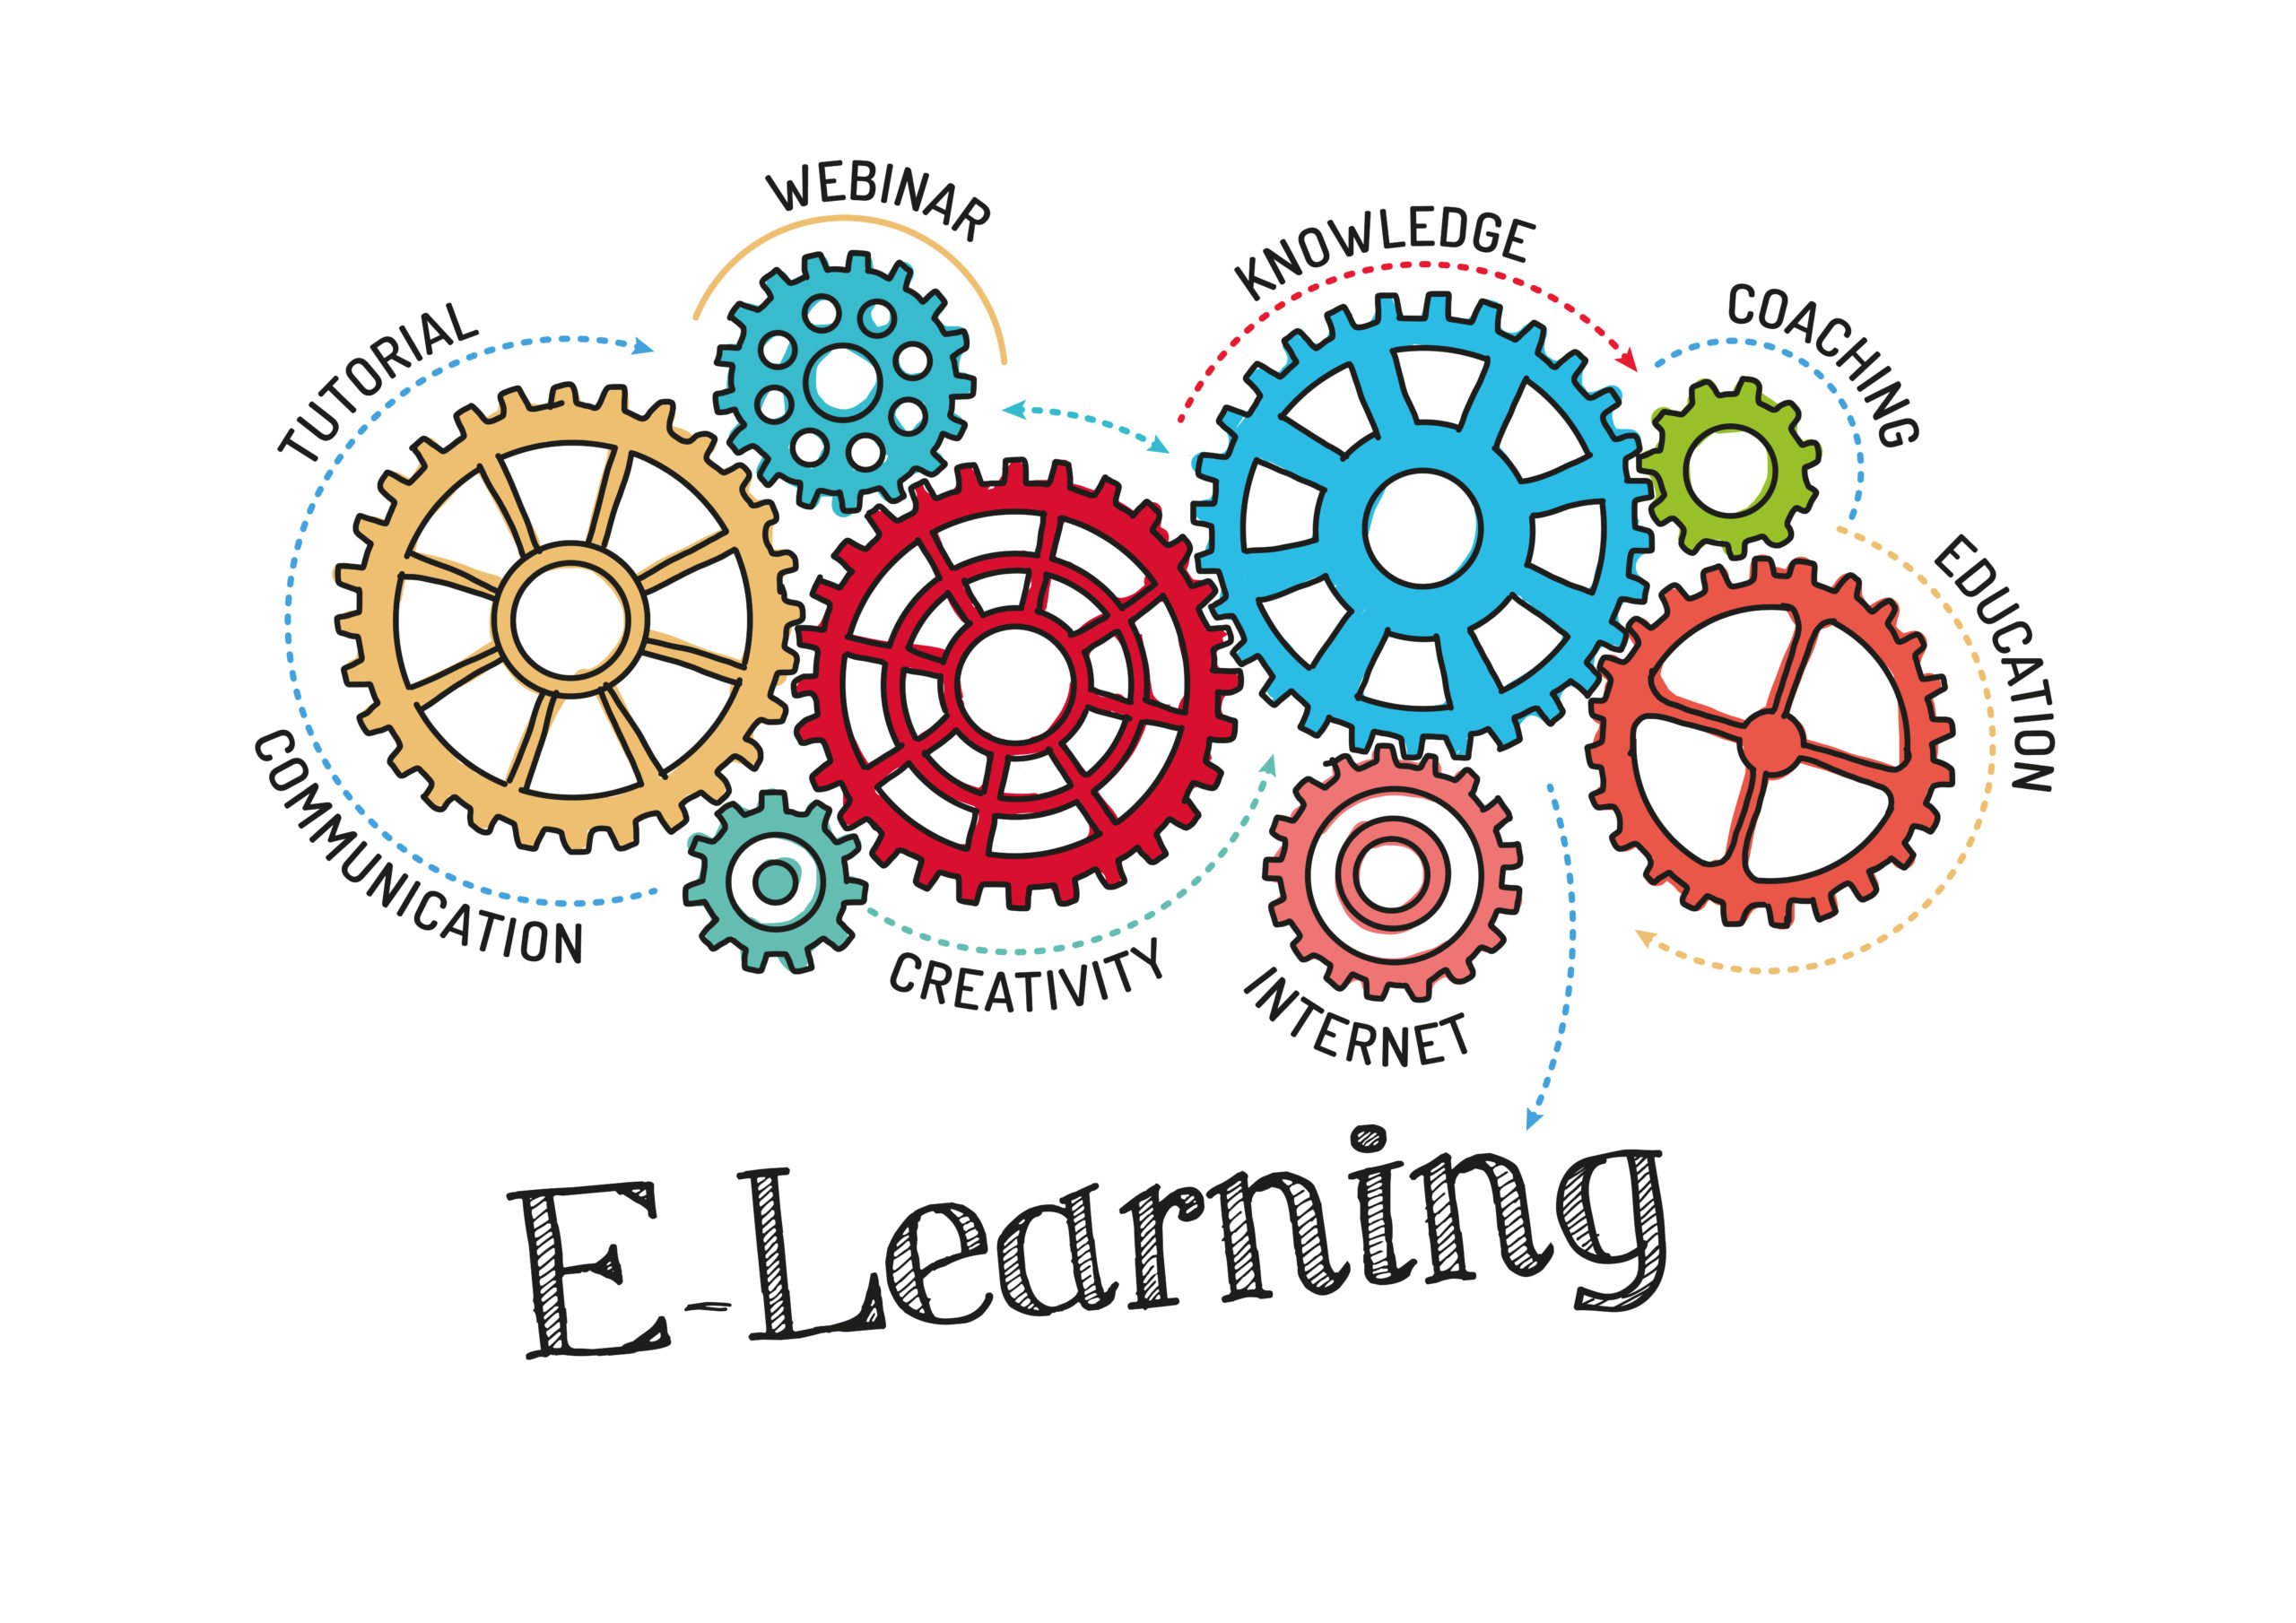 Remote Learning can help steam learning